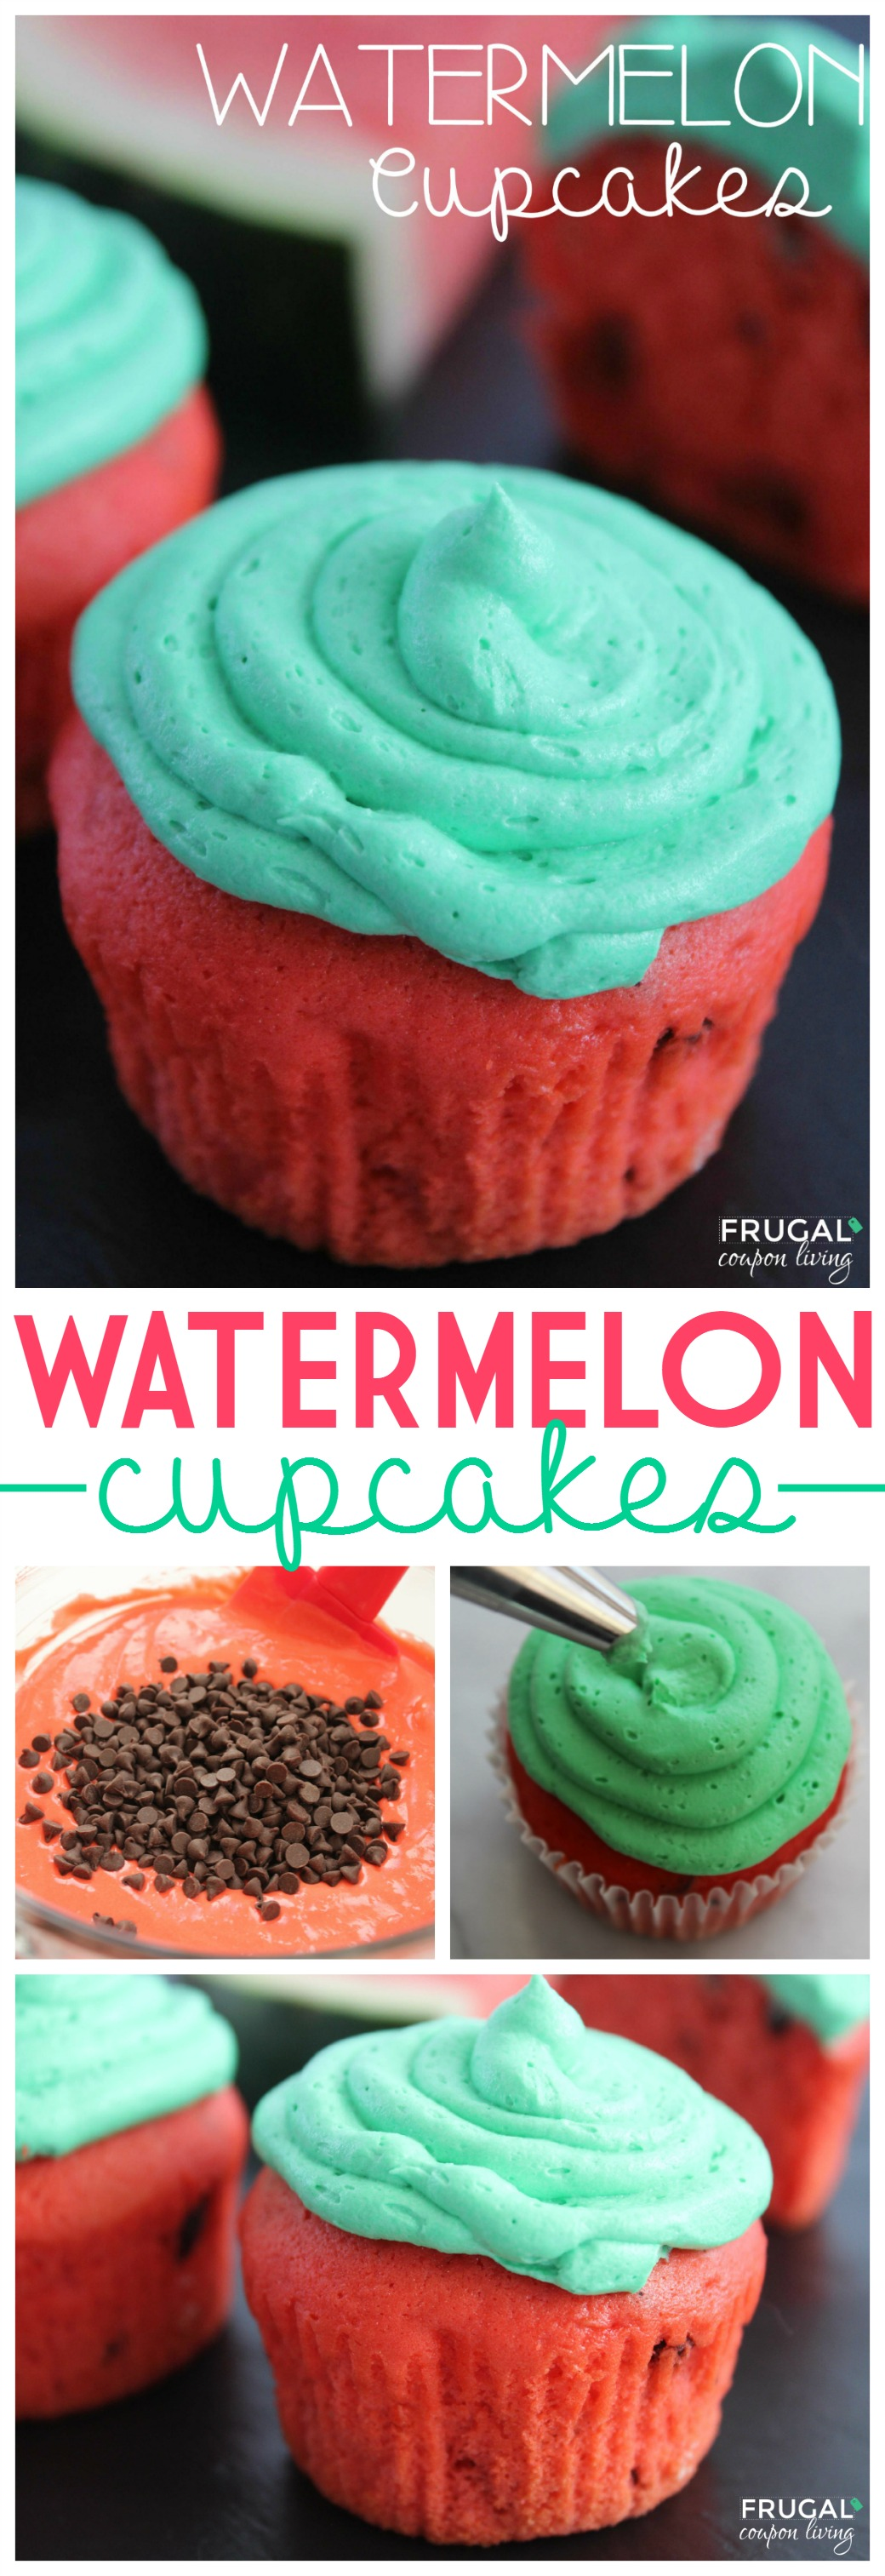 watermelon-cupcakes-Collage-frugal-coupon-living